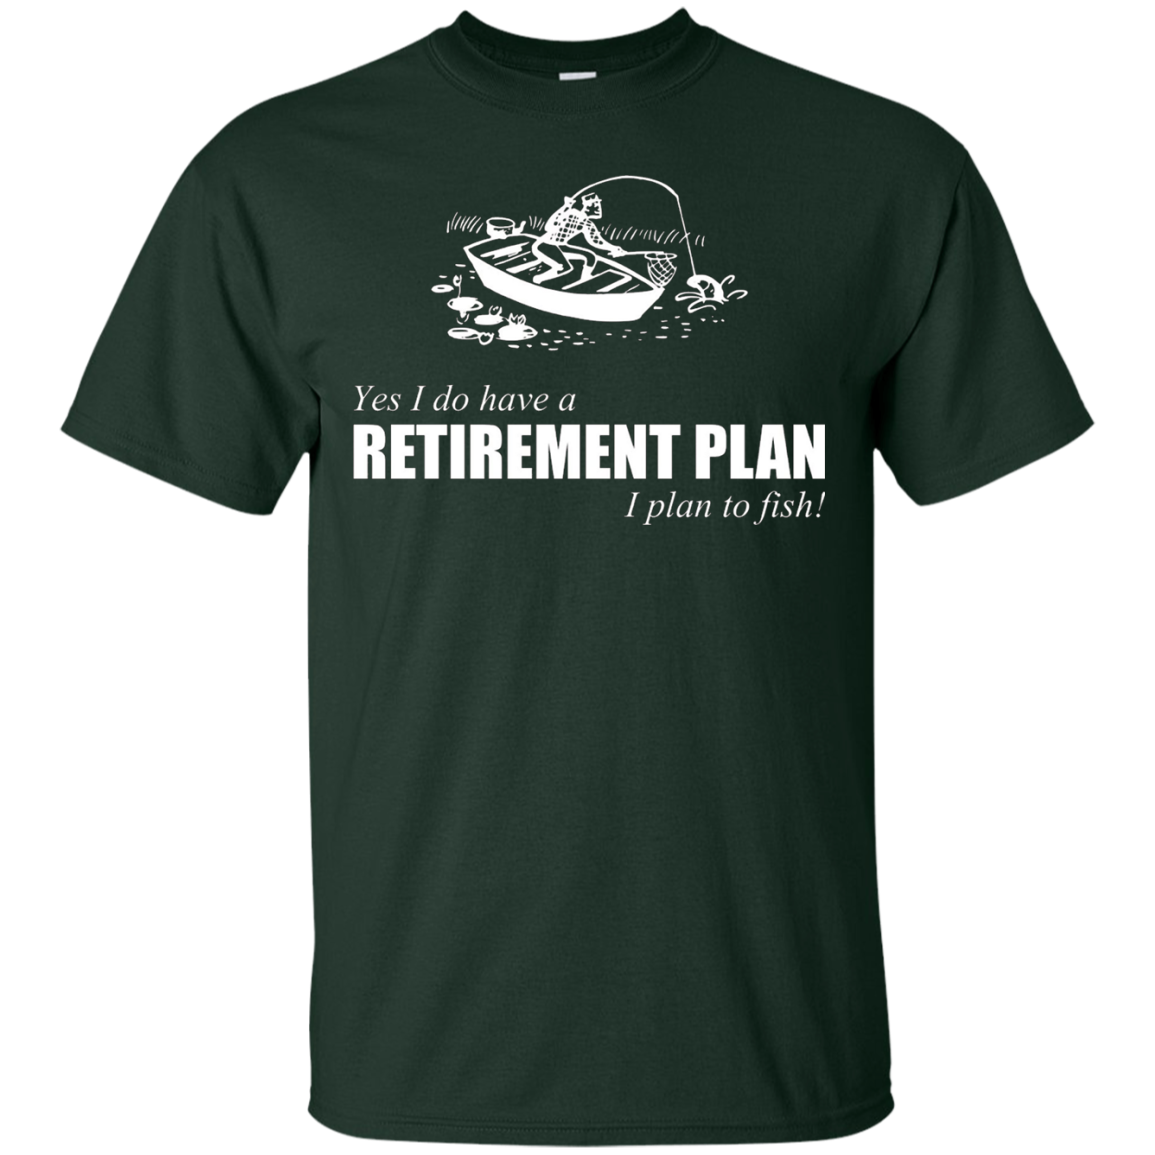 Yes I Do Have A Retirement Plan - Funny Fishing T-Shirt